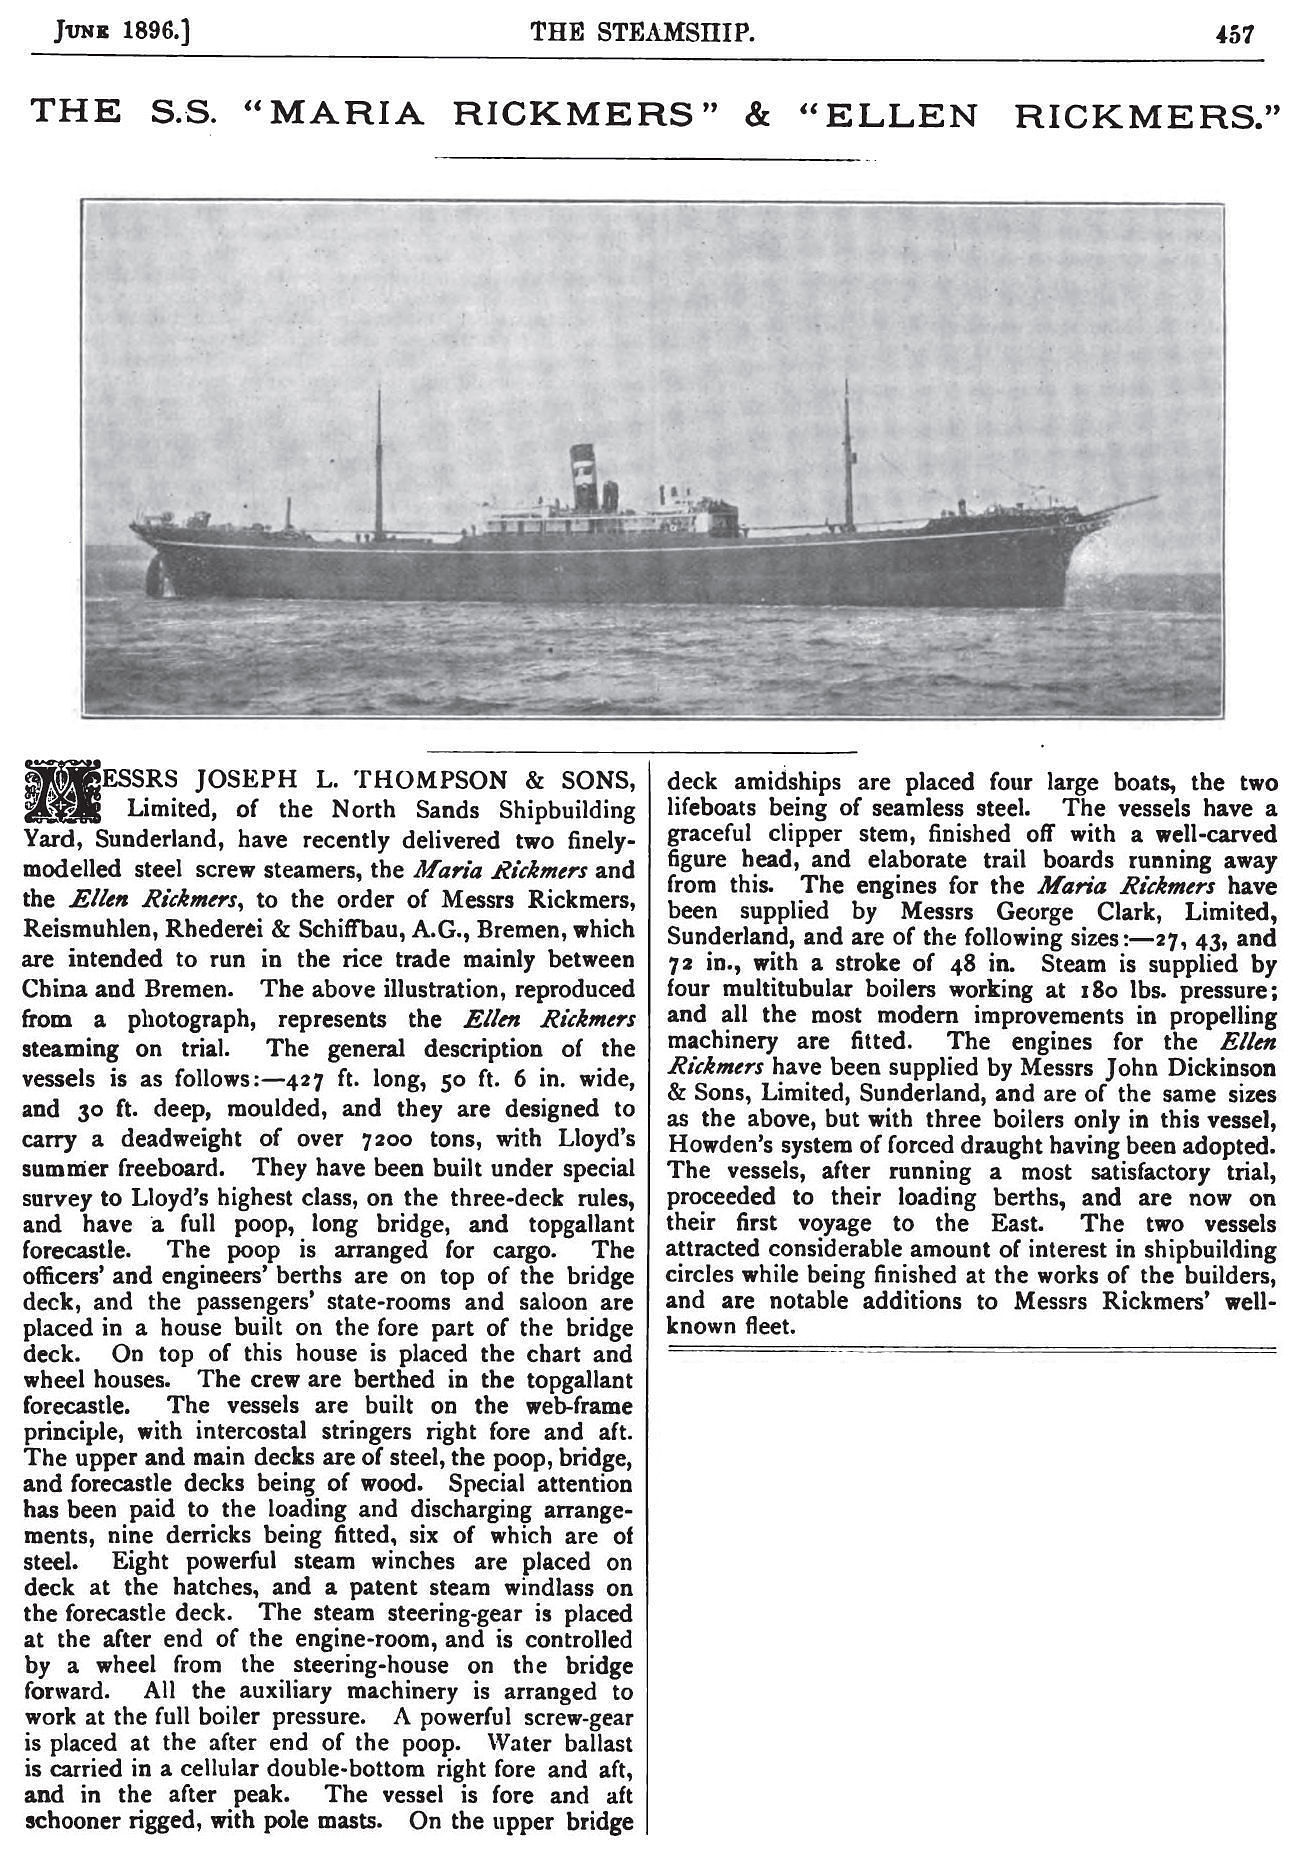 'Ellen Rickmers', built in 1896, ex The Steamship: An Illustrated Monthly Journal Devoted to the Interests of Shipbuilders, Marine Engineers, Electricians, and Shipowners, Vol. VII - July 1895 to June 1896. On page 457.